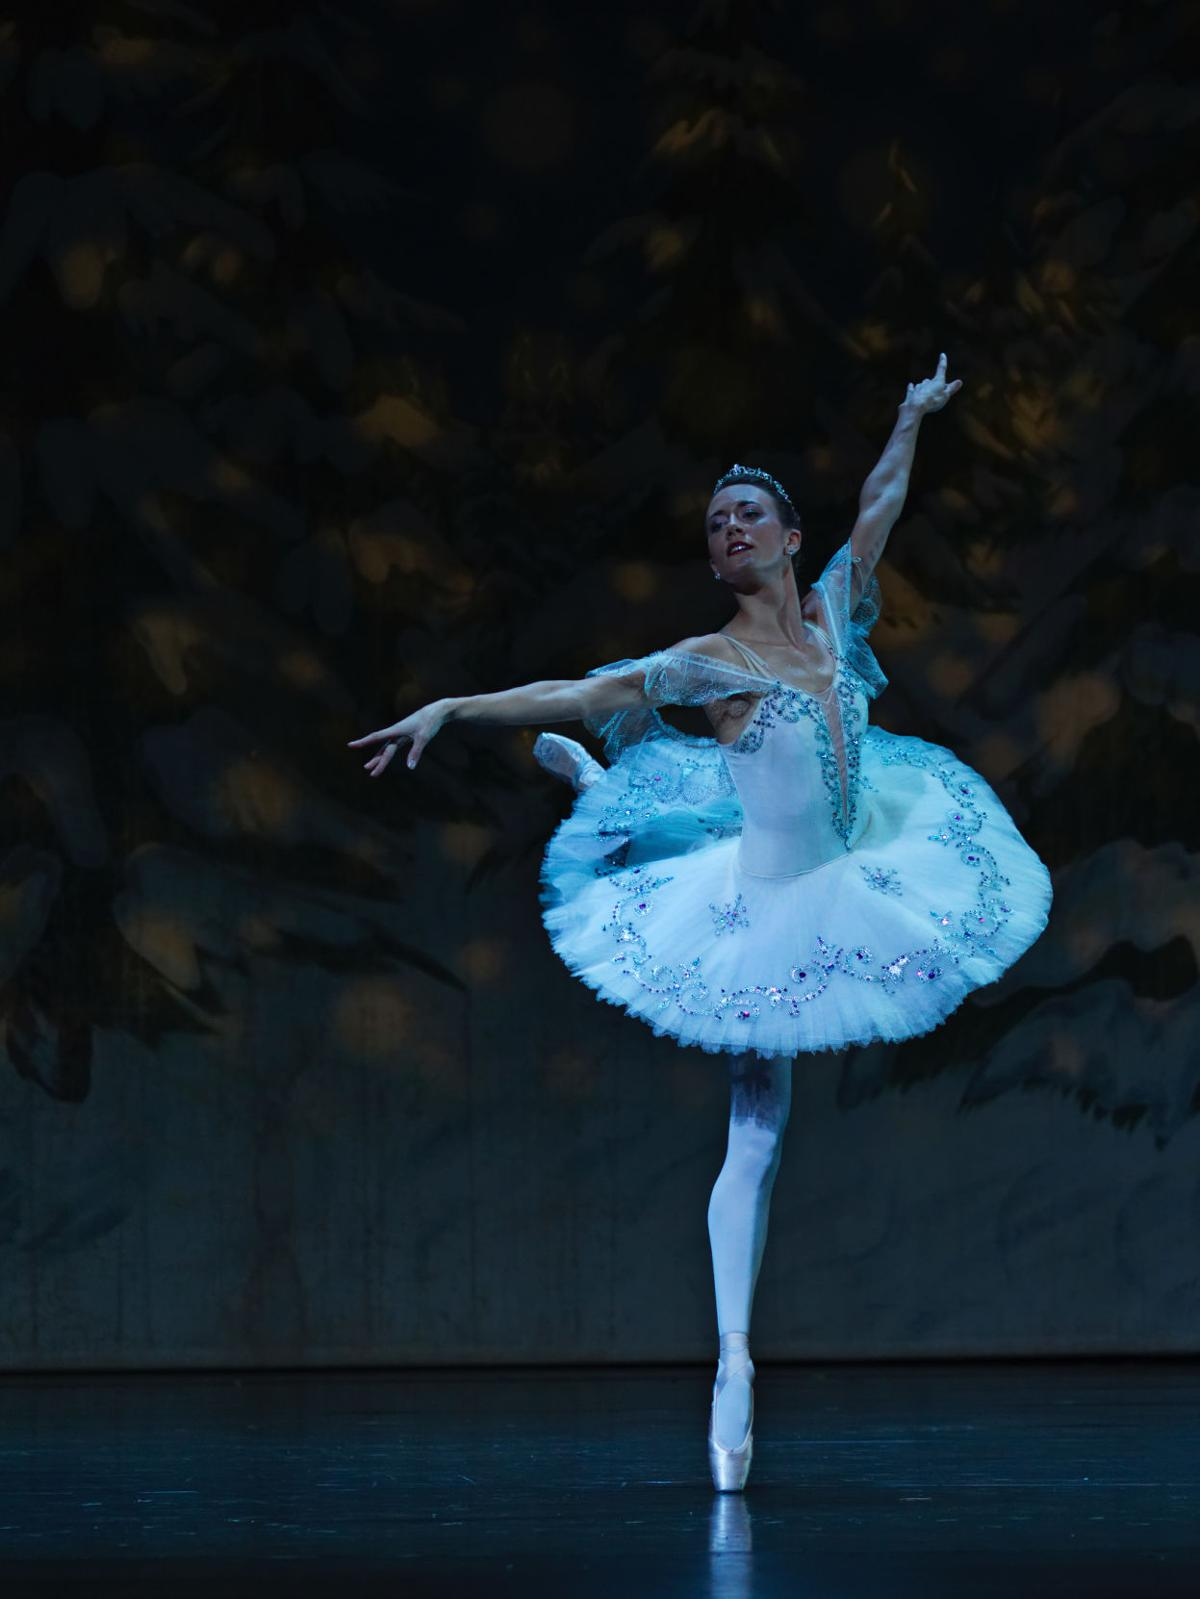 Asheville Ballet Snow Queen by Michael Krout.JPG